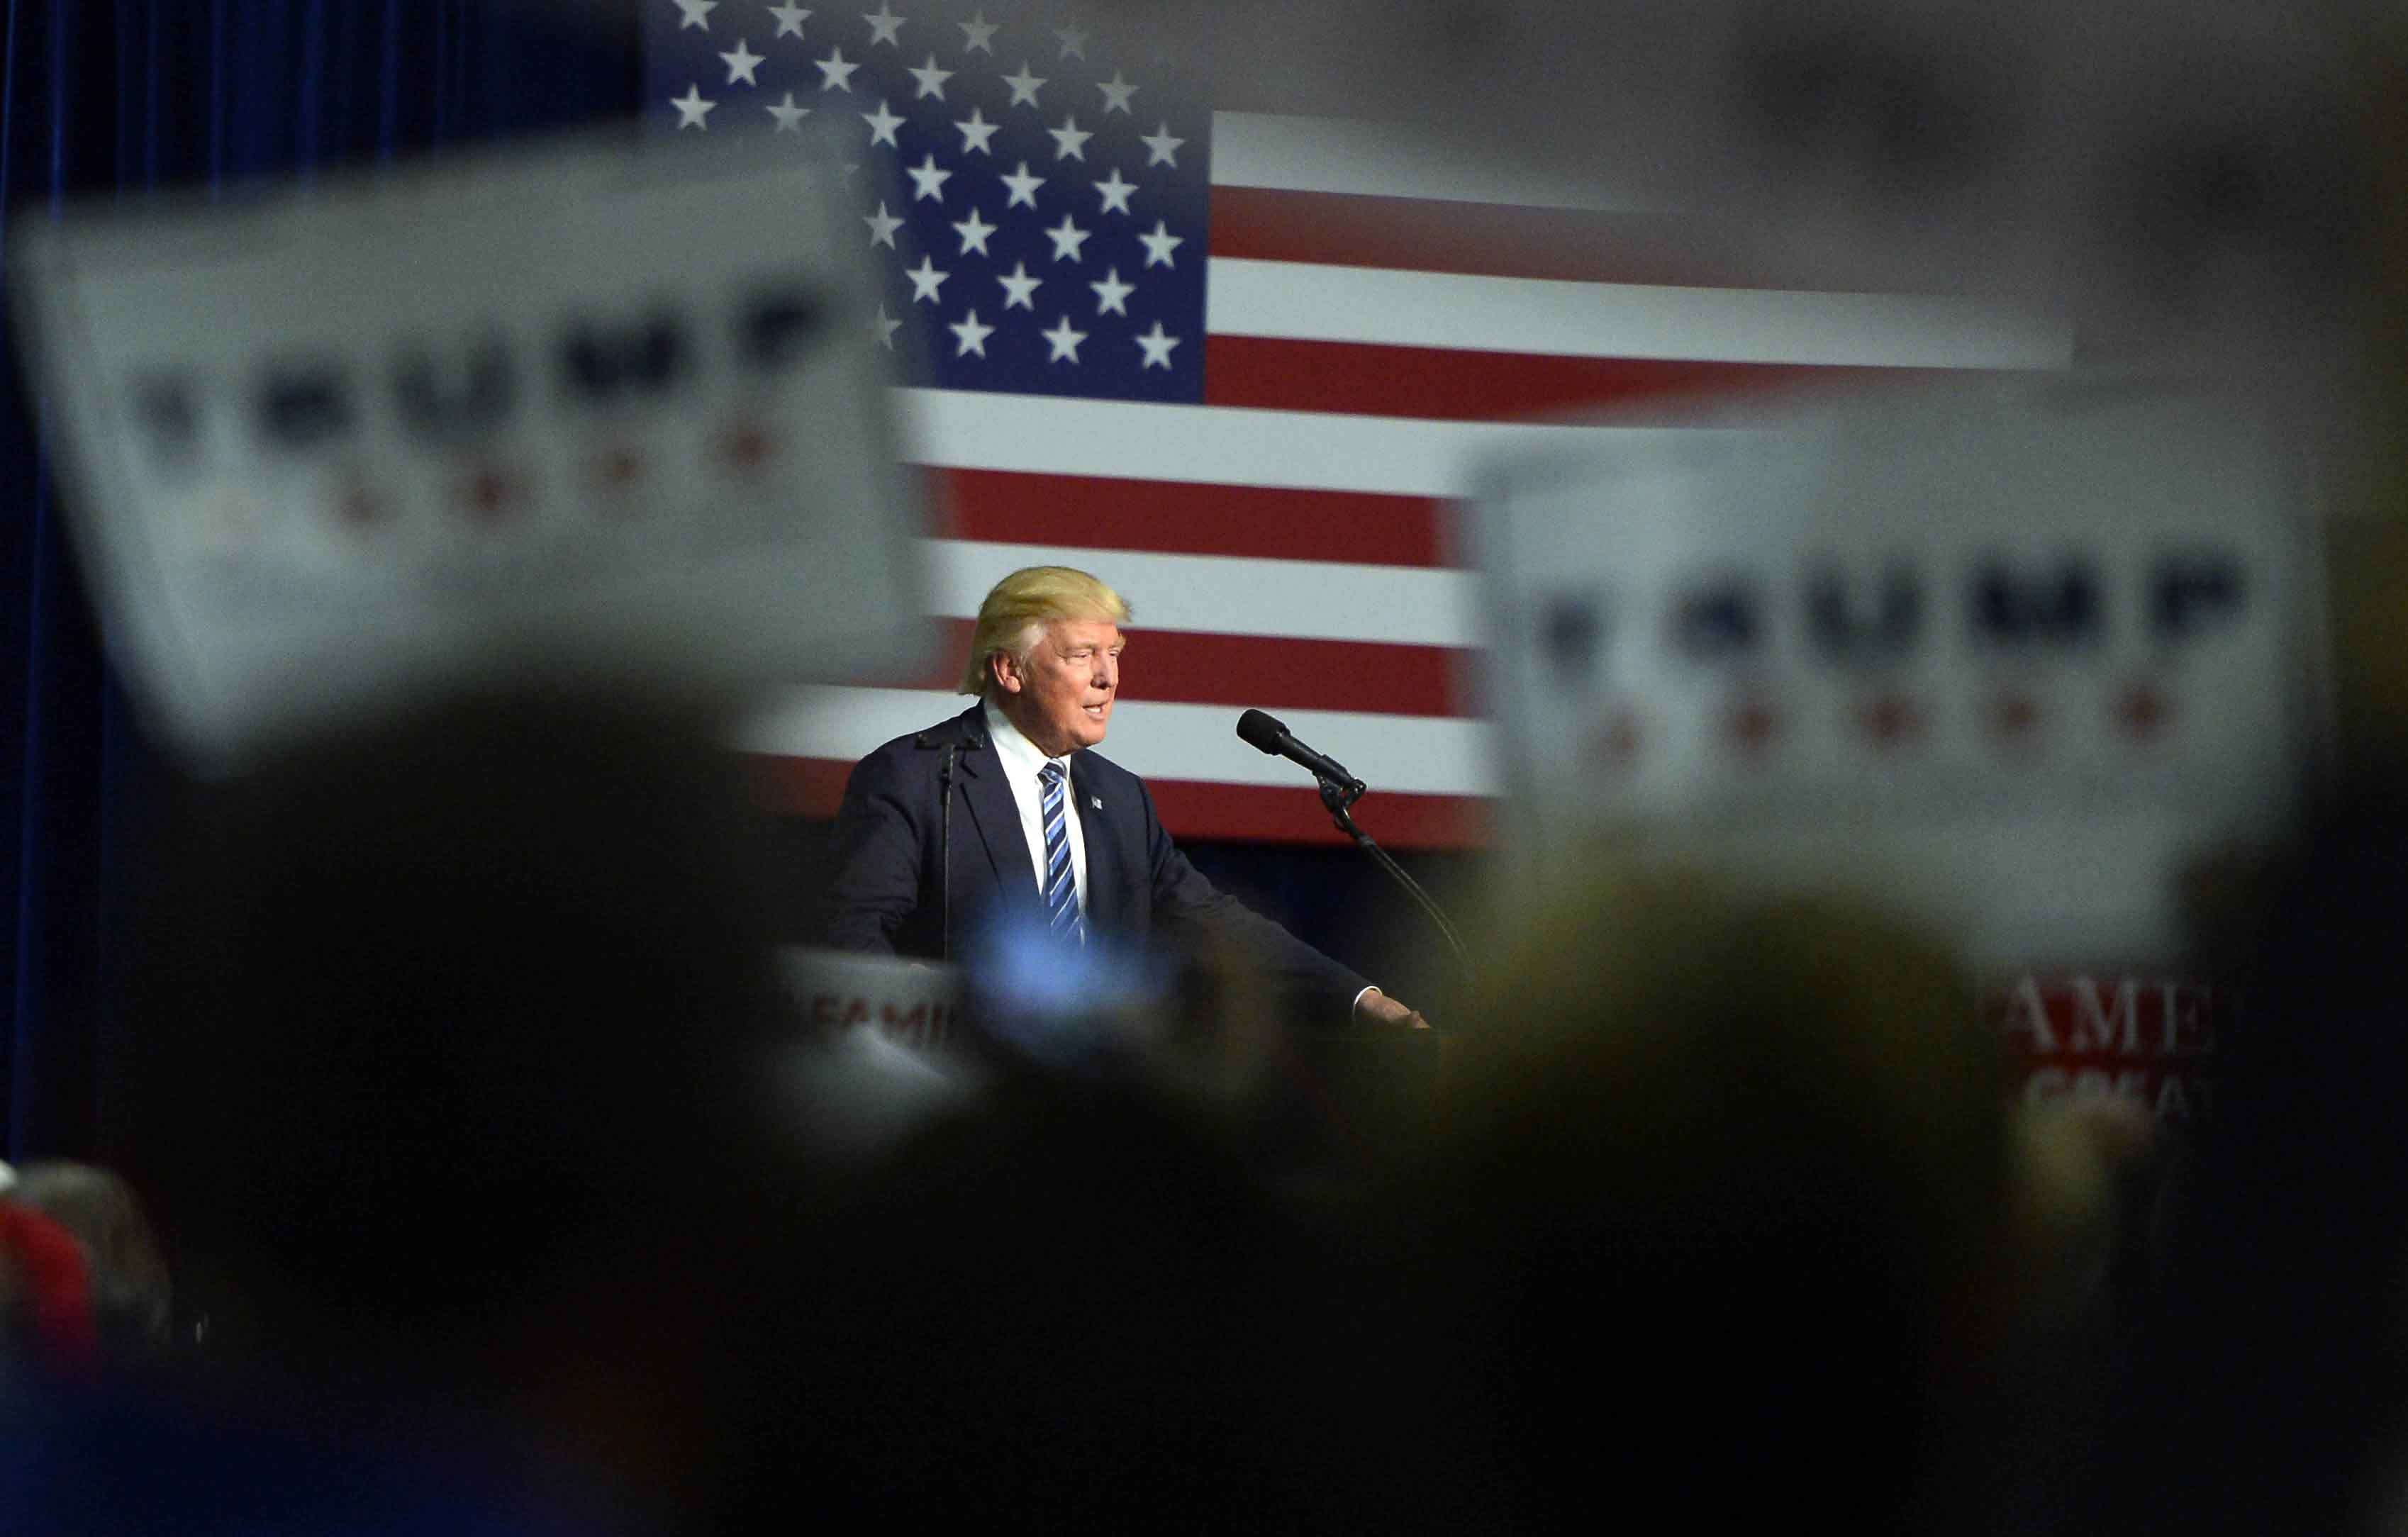 Republican presidential candidate Donald Trump speaks at a campaign rally at the Charlotte Convention Center in Charlotte, N.C., on Friday, Oct. 14, 2016. (David T. Foster III/Charlotte Observer/TNS)